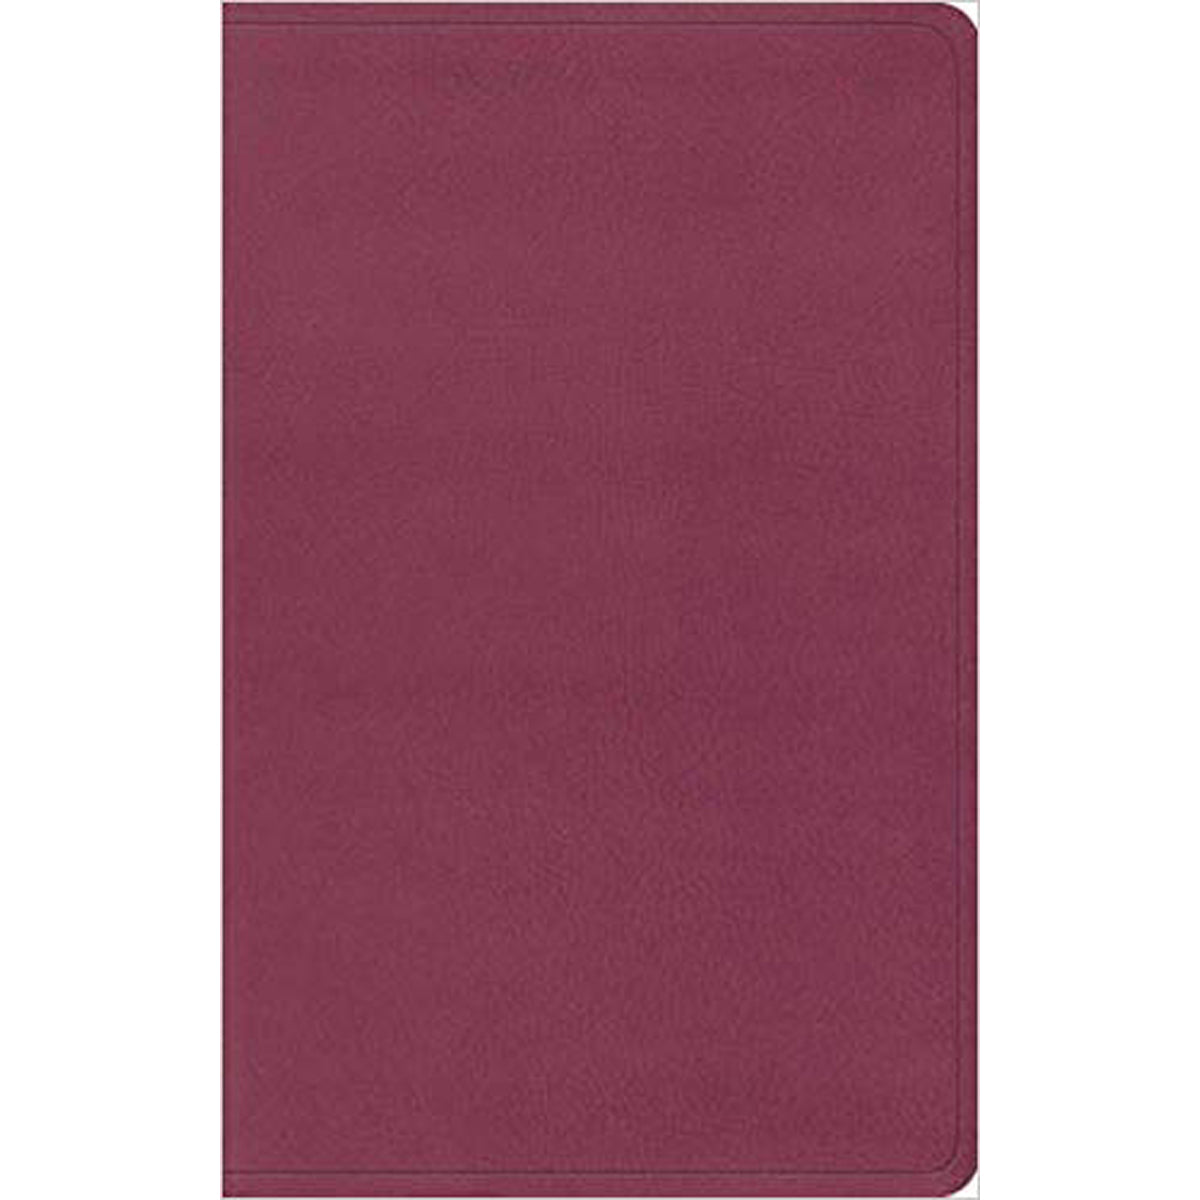 ESV Value Thinline Bible Pink (Imitation Leather)